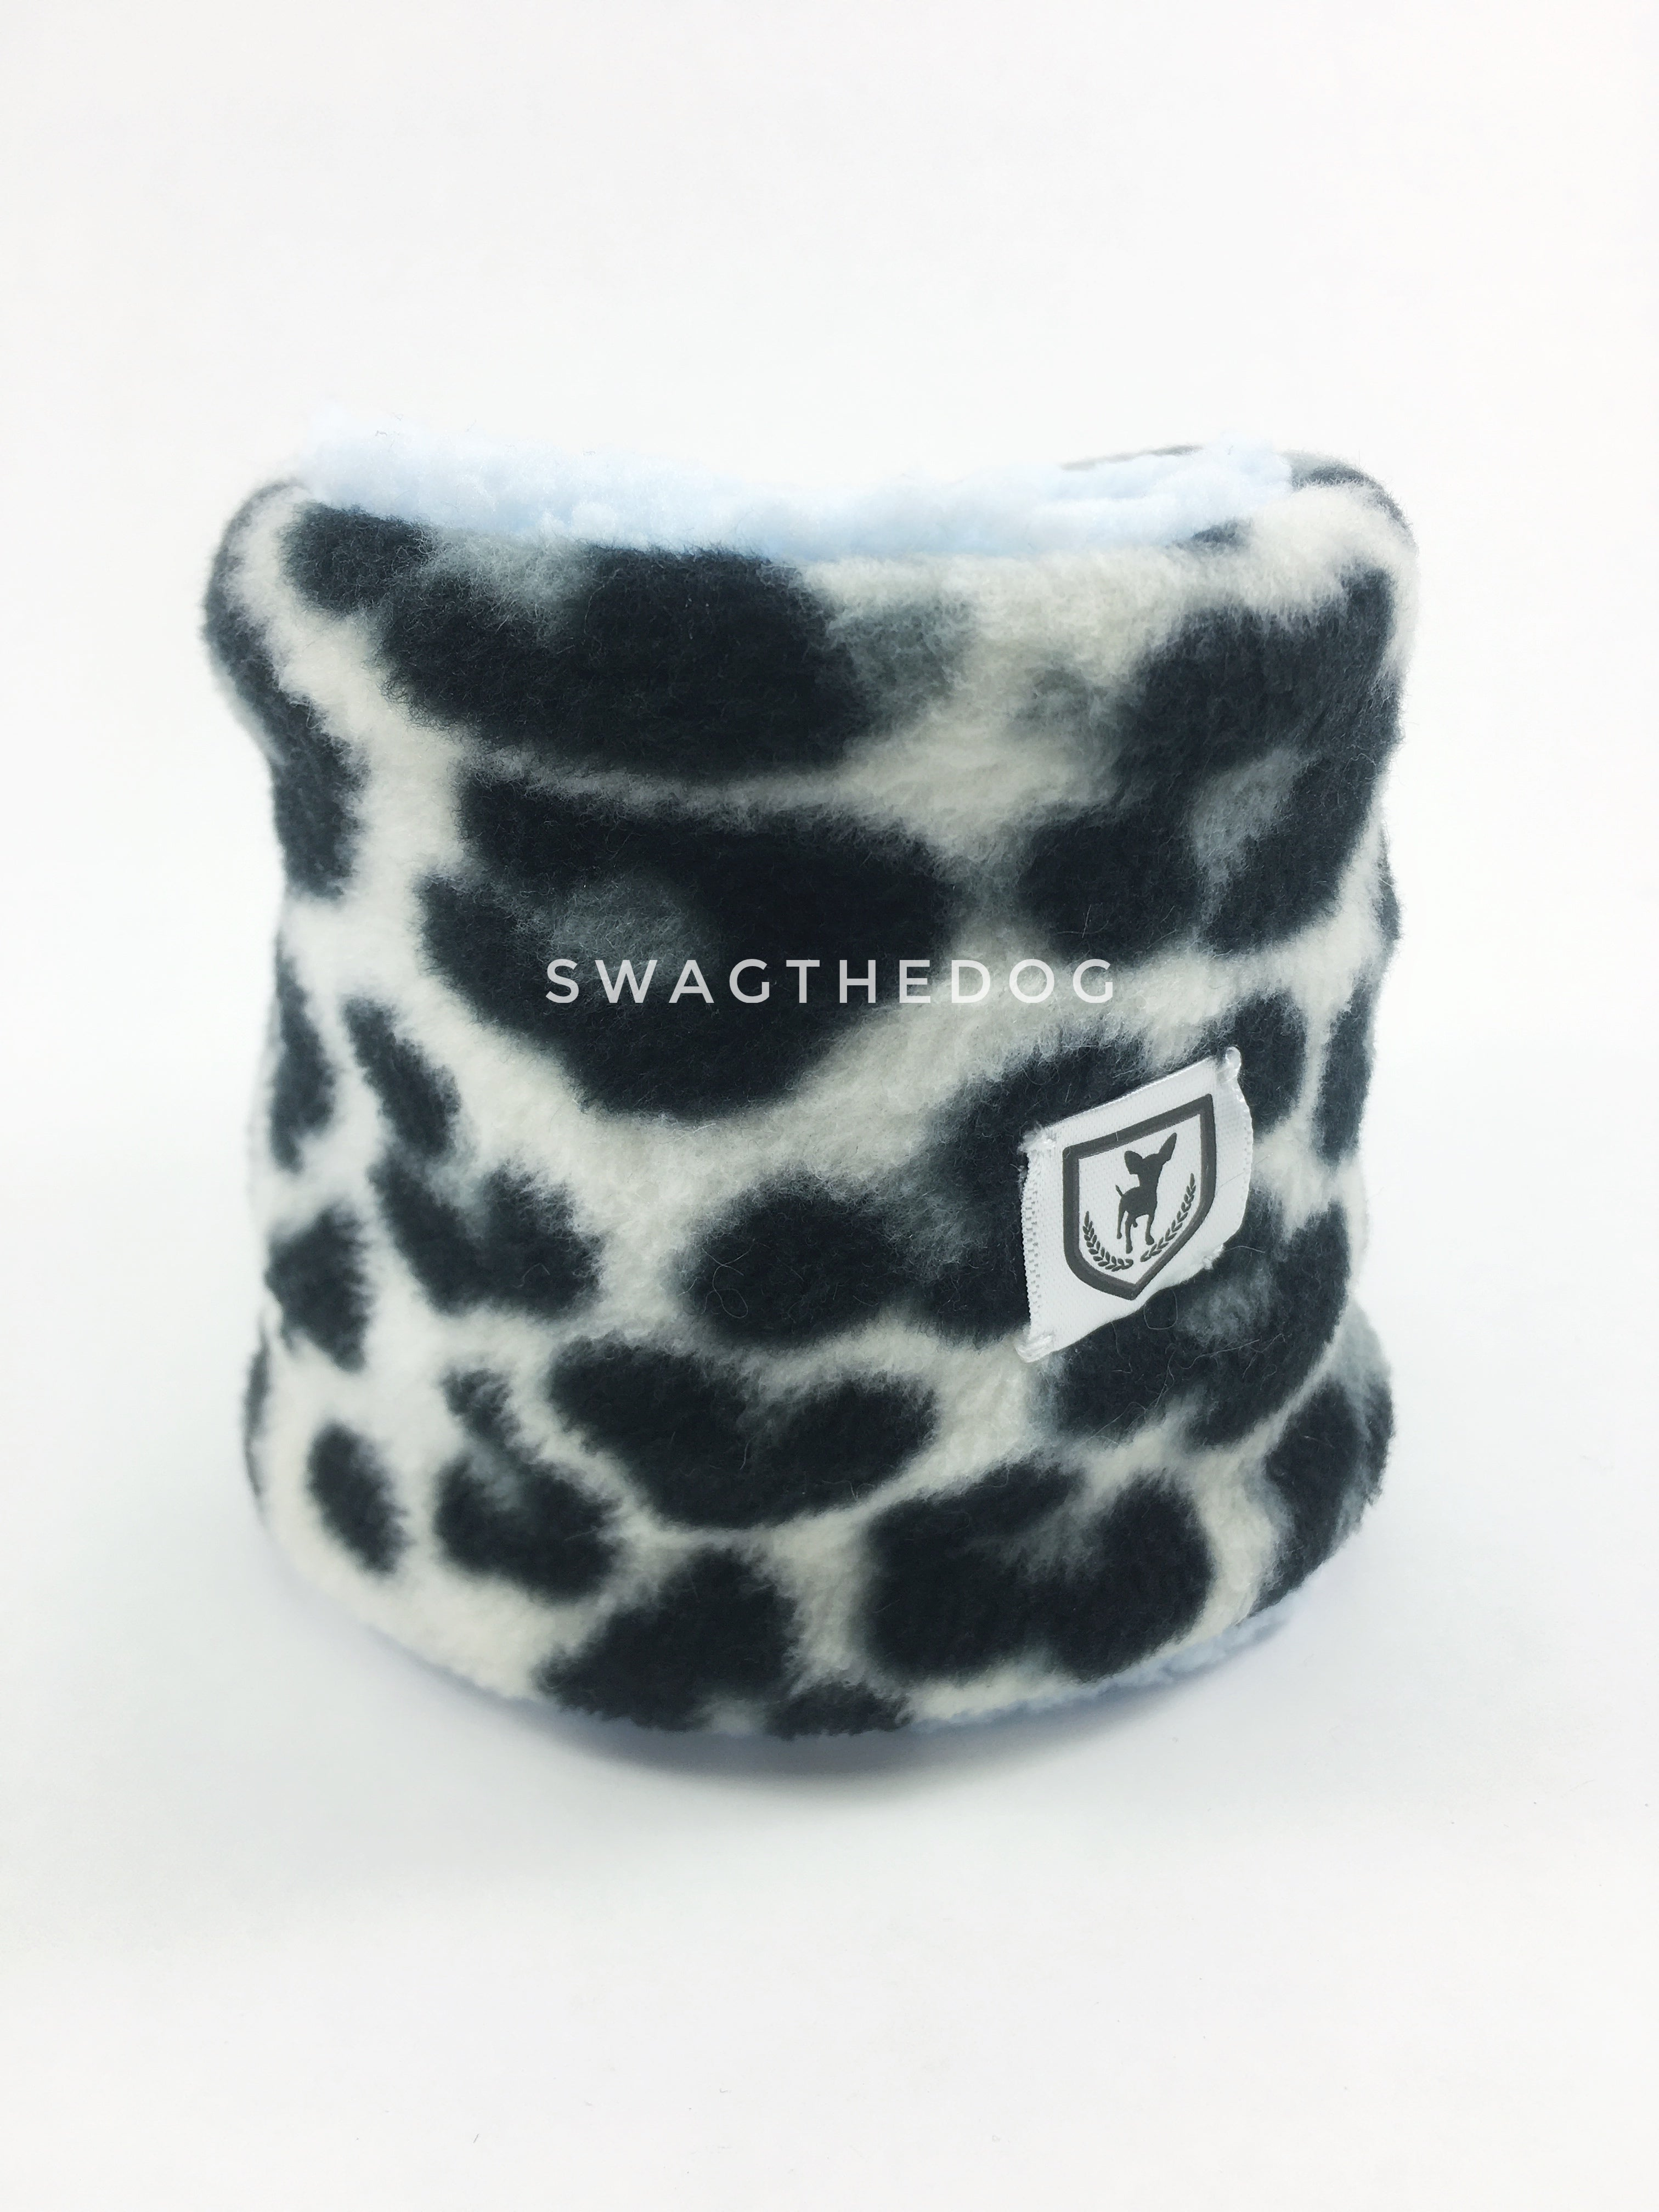 Gray Snow Leopard Swagsnood - Product Front View. Gray snow leopard print fleece Dog Snood and blue sherpa peeking out